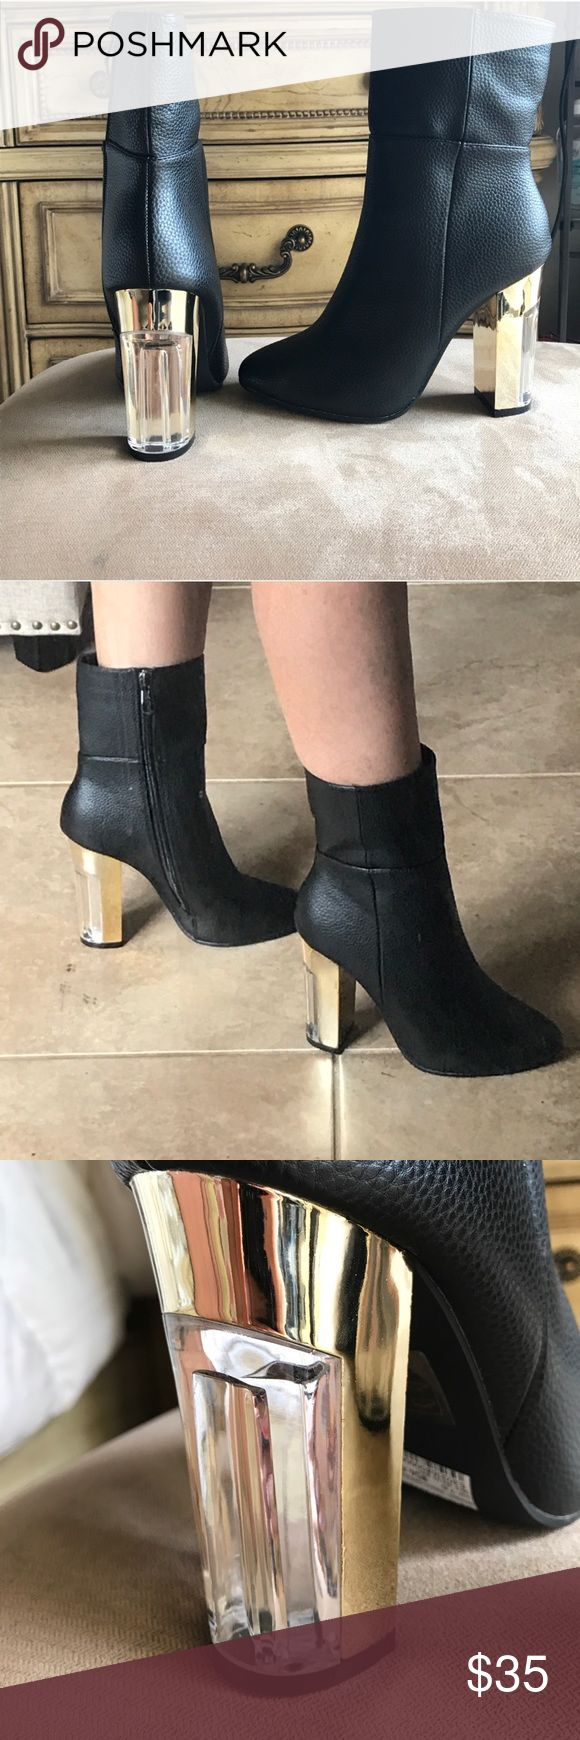 Leather zip up boot Brand new! Charlotte ruse. Super comfy. Gold and clear accent heel Shoes Heeled Boots